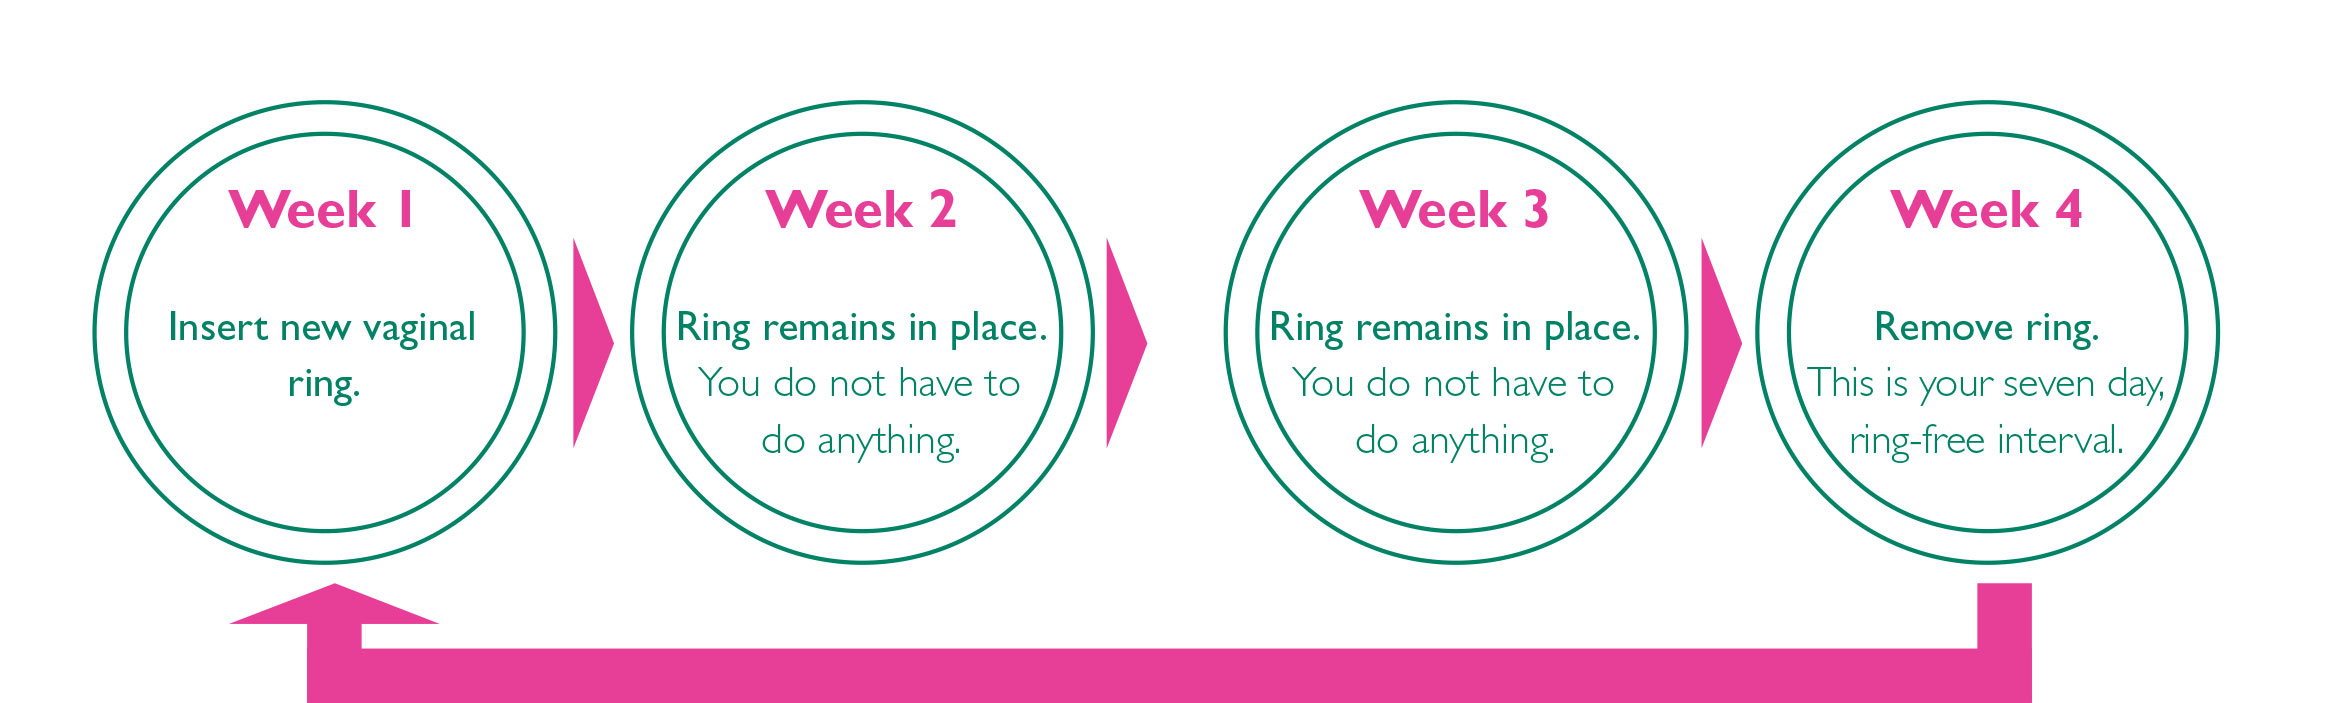 Chart: How to use the contraceptive vaginal ring